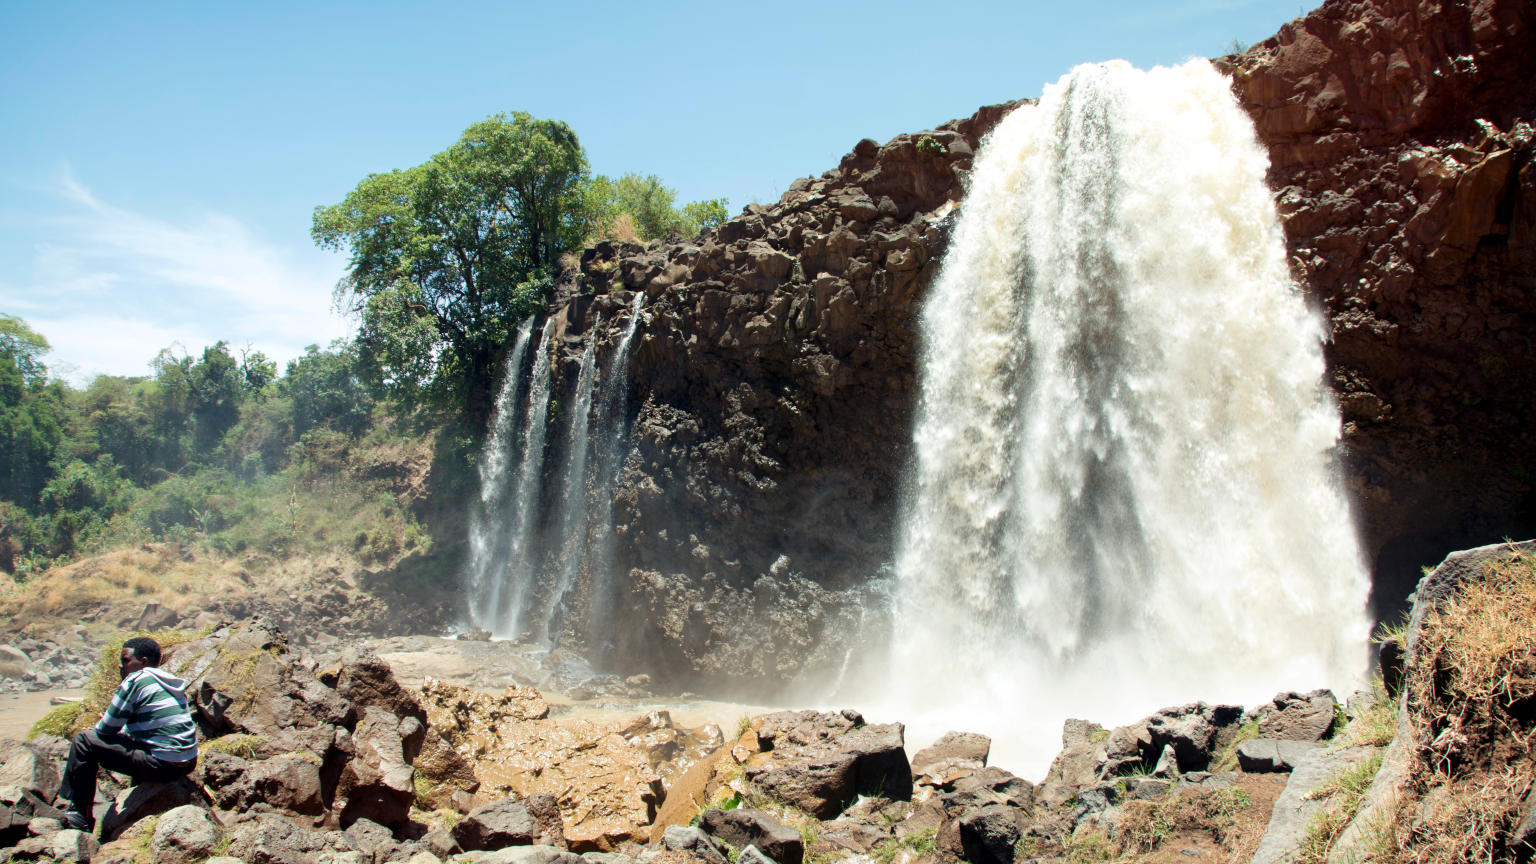 Ethiopia-Blue-Nile-Falls-Waterfall-Local-boy-Daniel-and-Audrey-2014-Ethiopia-Blue-Nile-Falls-processed-Lg-RGB